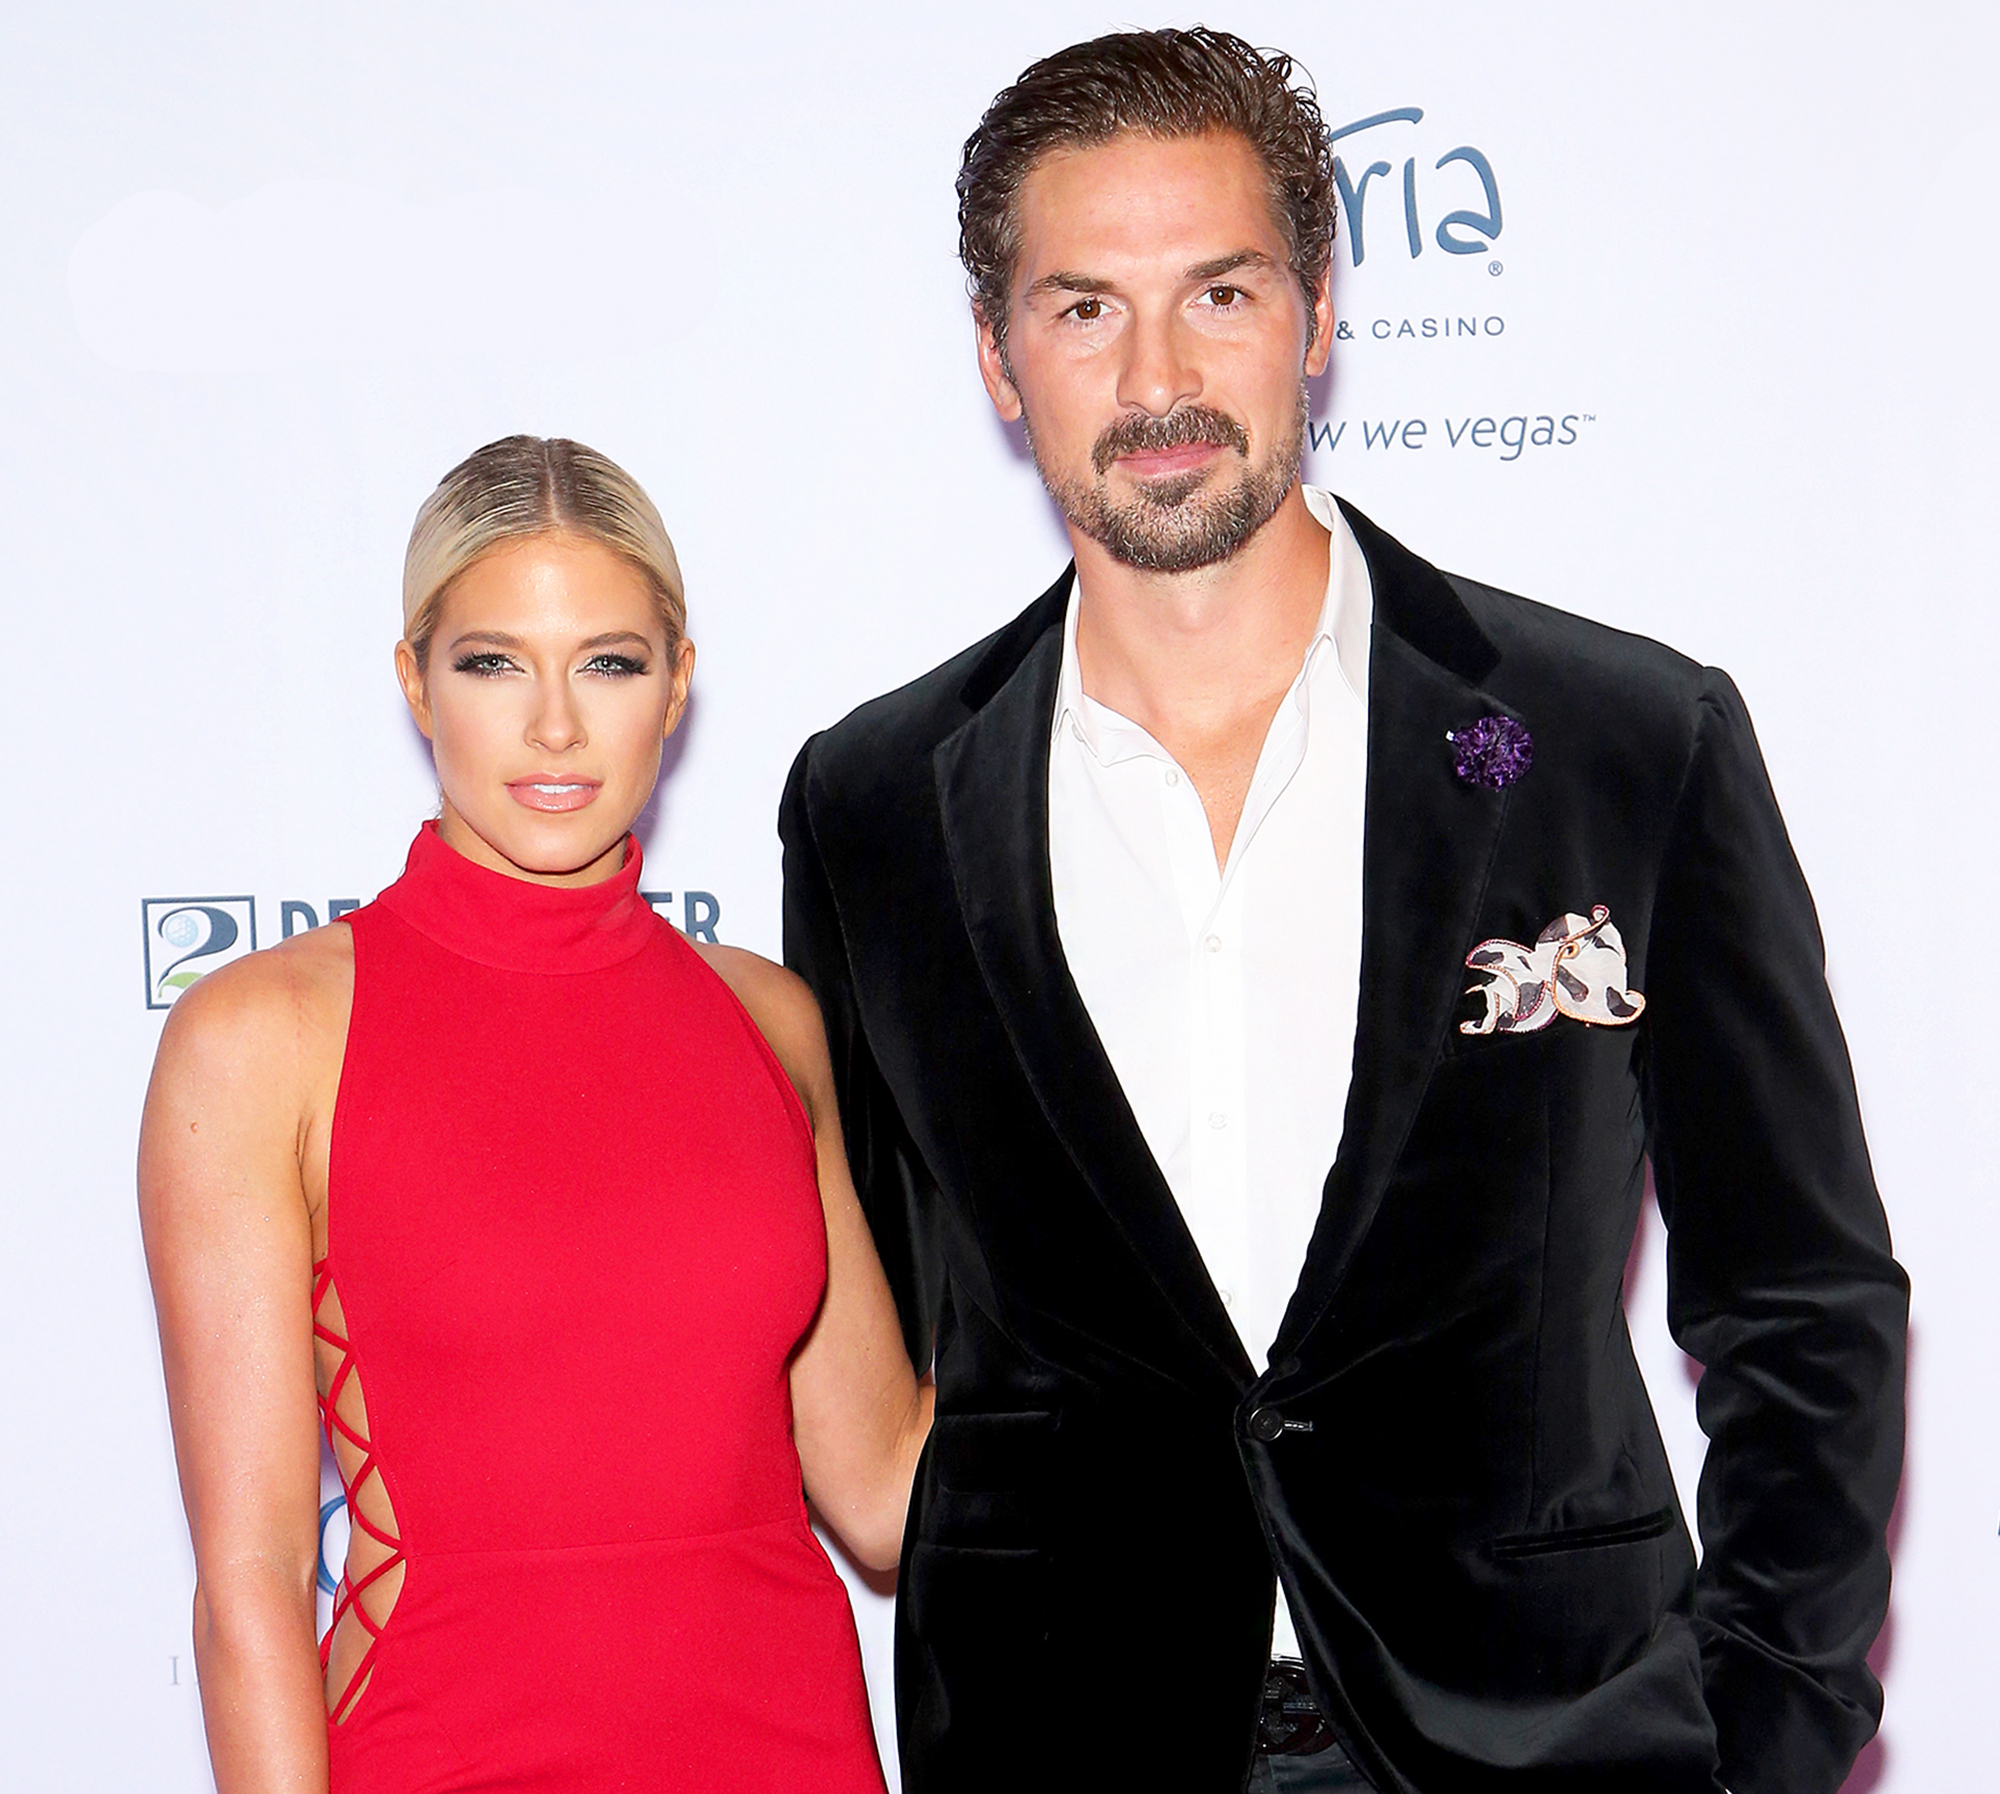 Barbie Blank and Sheldon Souray